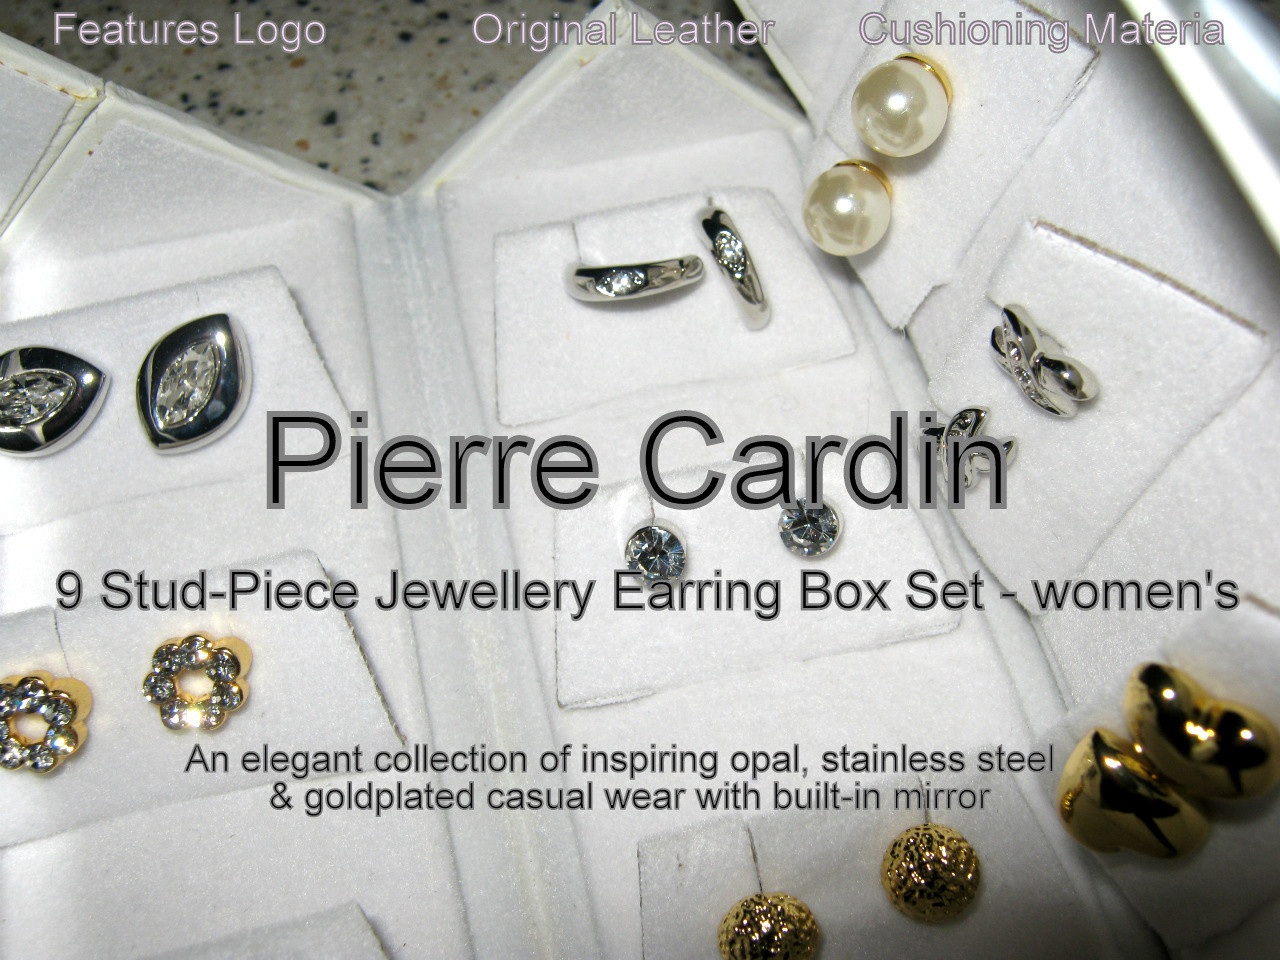 Pierre Cardin 9 Stud Piece Earring Box Set - women's